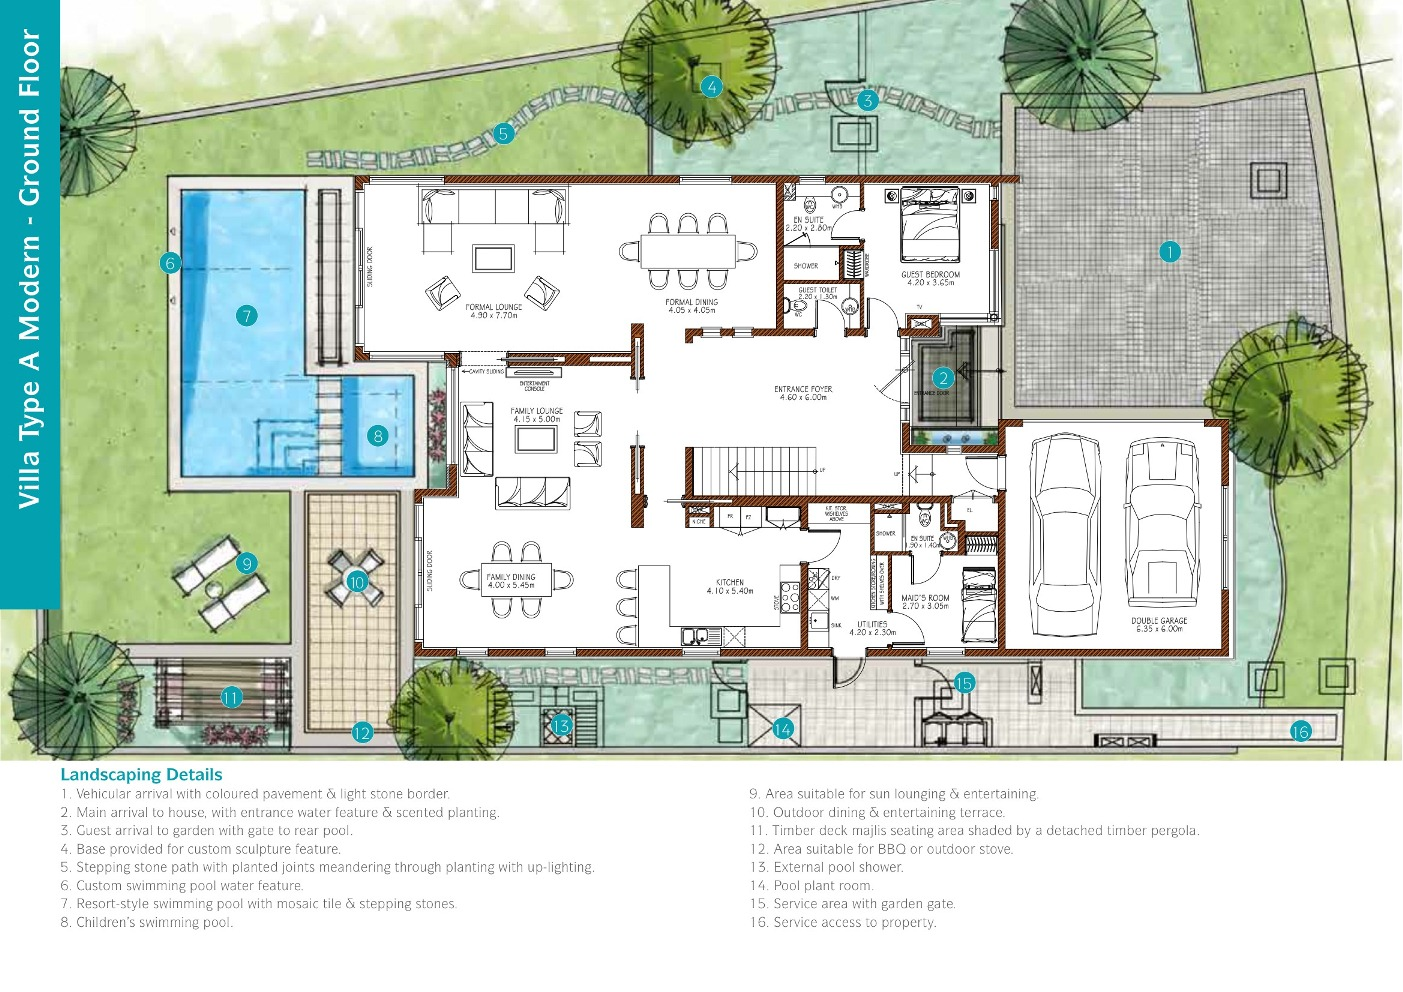 sanctuary falls villa floor plans jumeirah golf estates